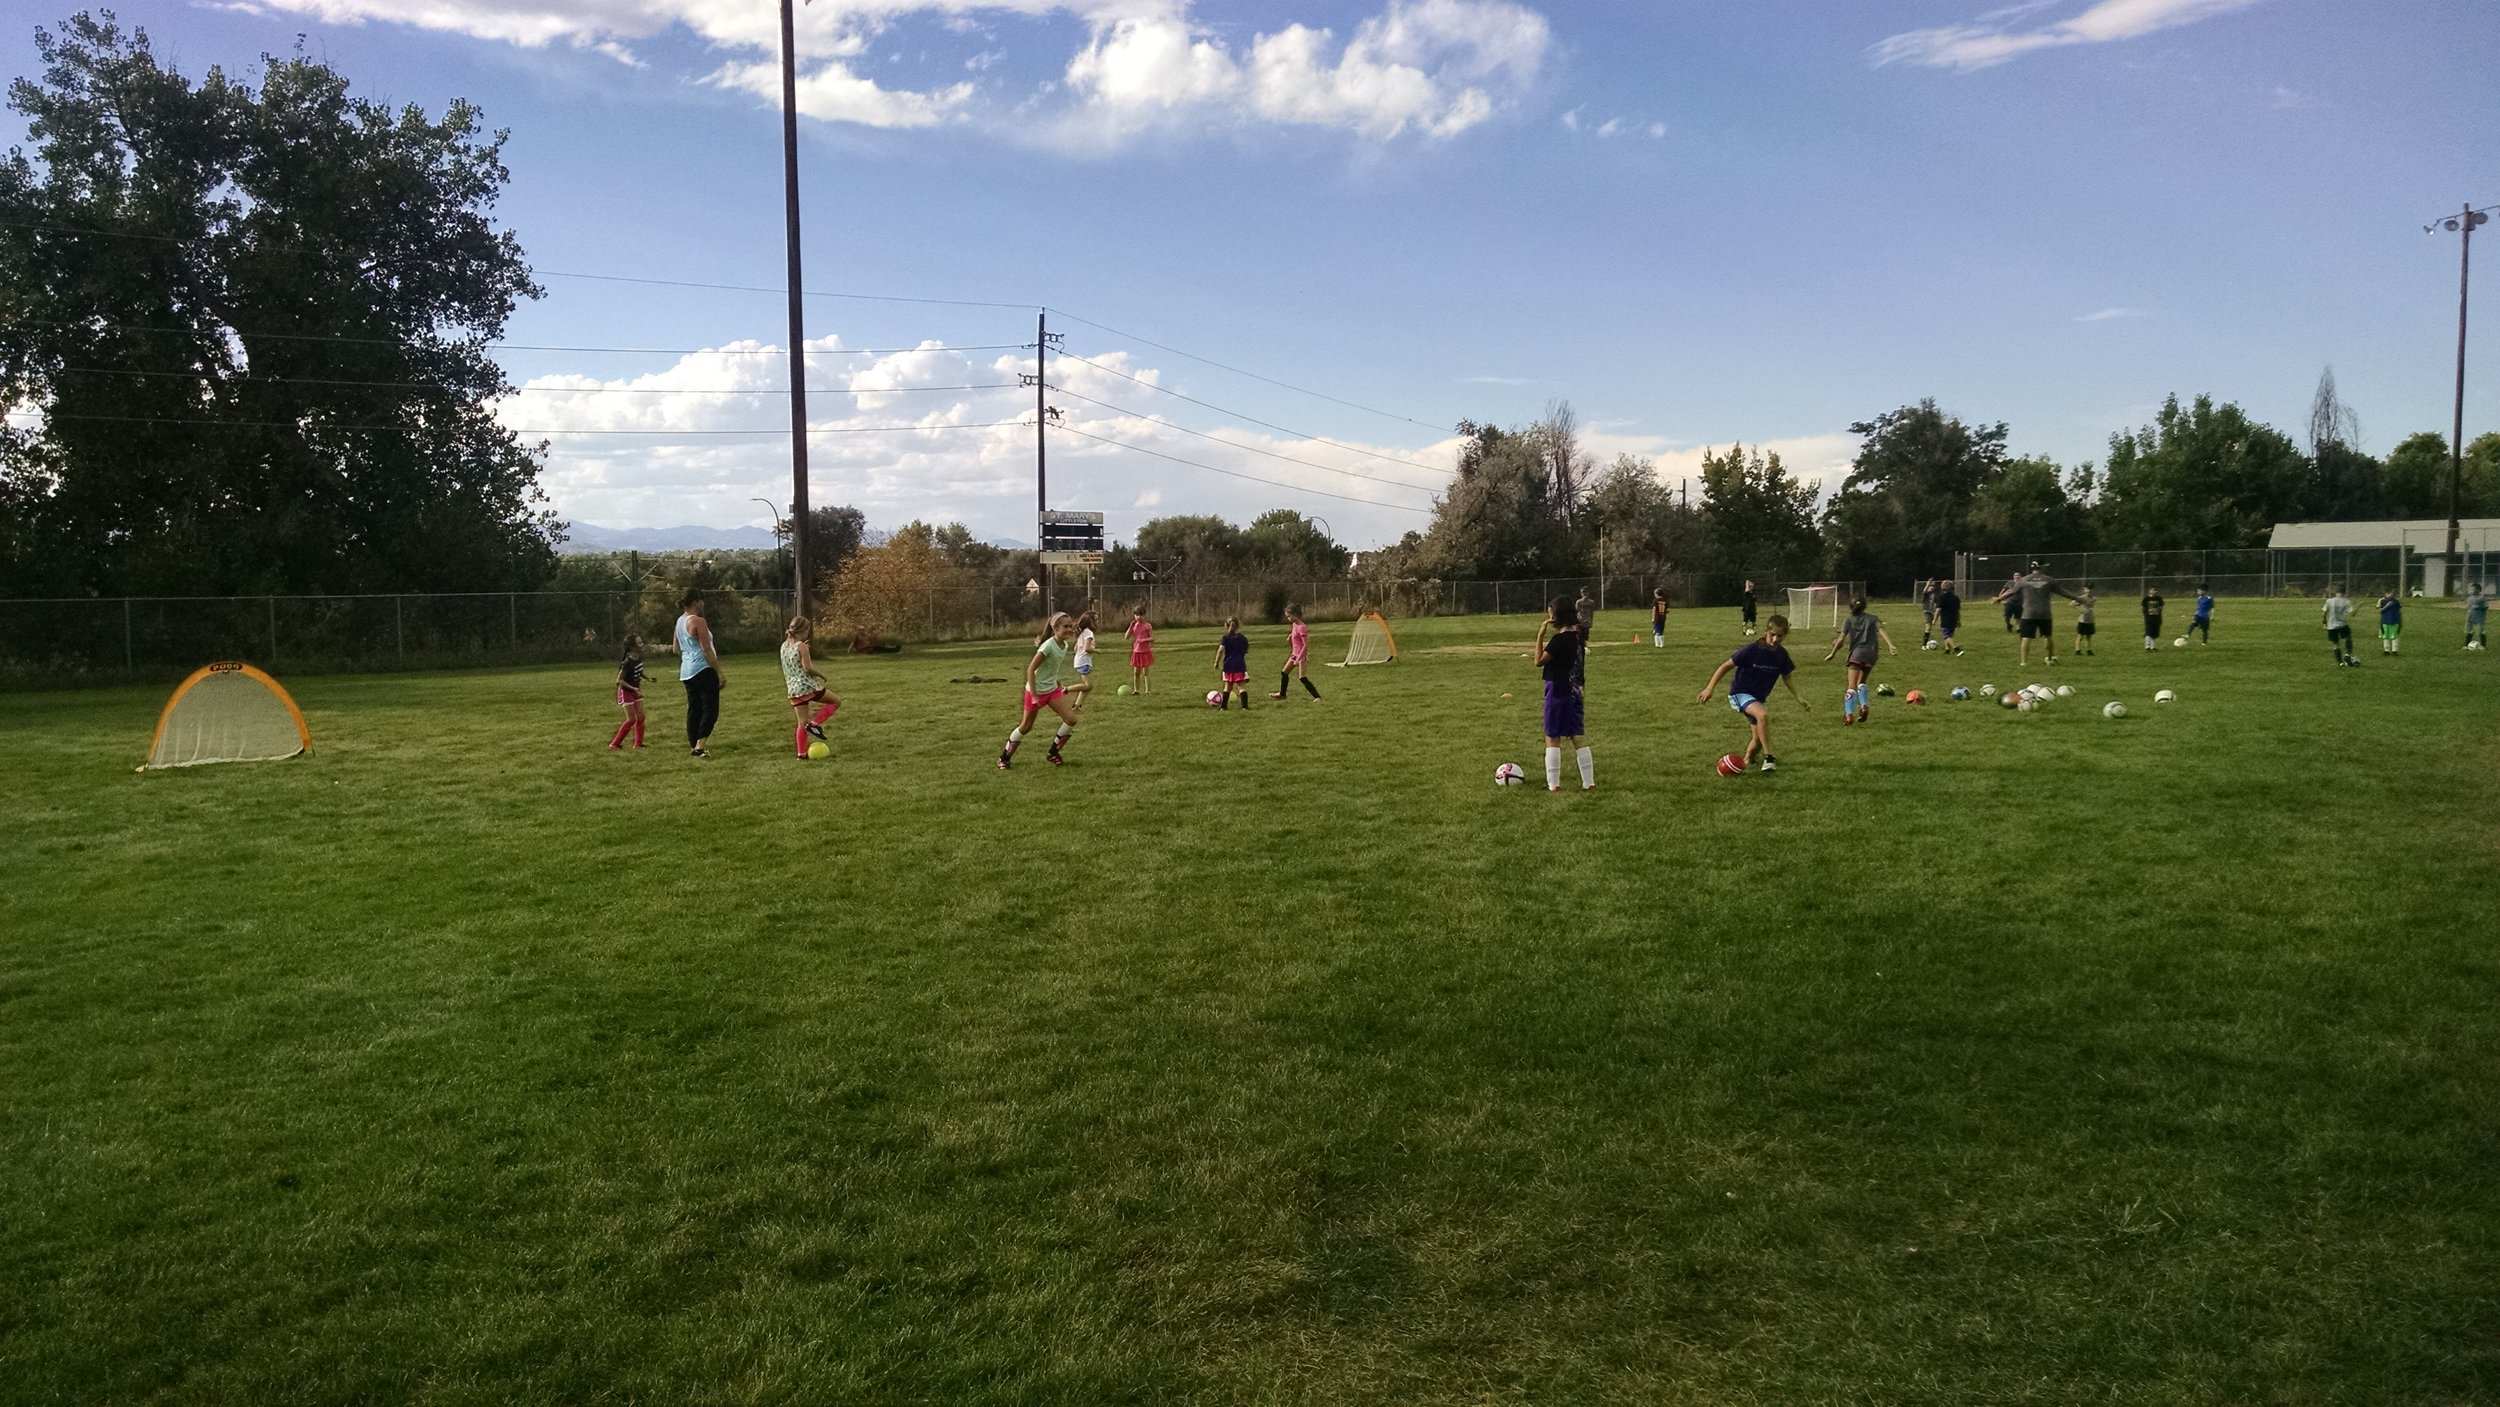 After-School Clinics - We offer a wide variety of weekly sports clinic conveniently scheduled after school. If interested in bringing Frassati and/or Badano Sports to your school, email coachmikita@frassatisports.org.